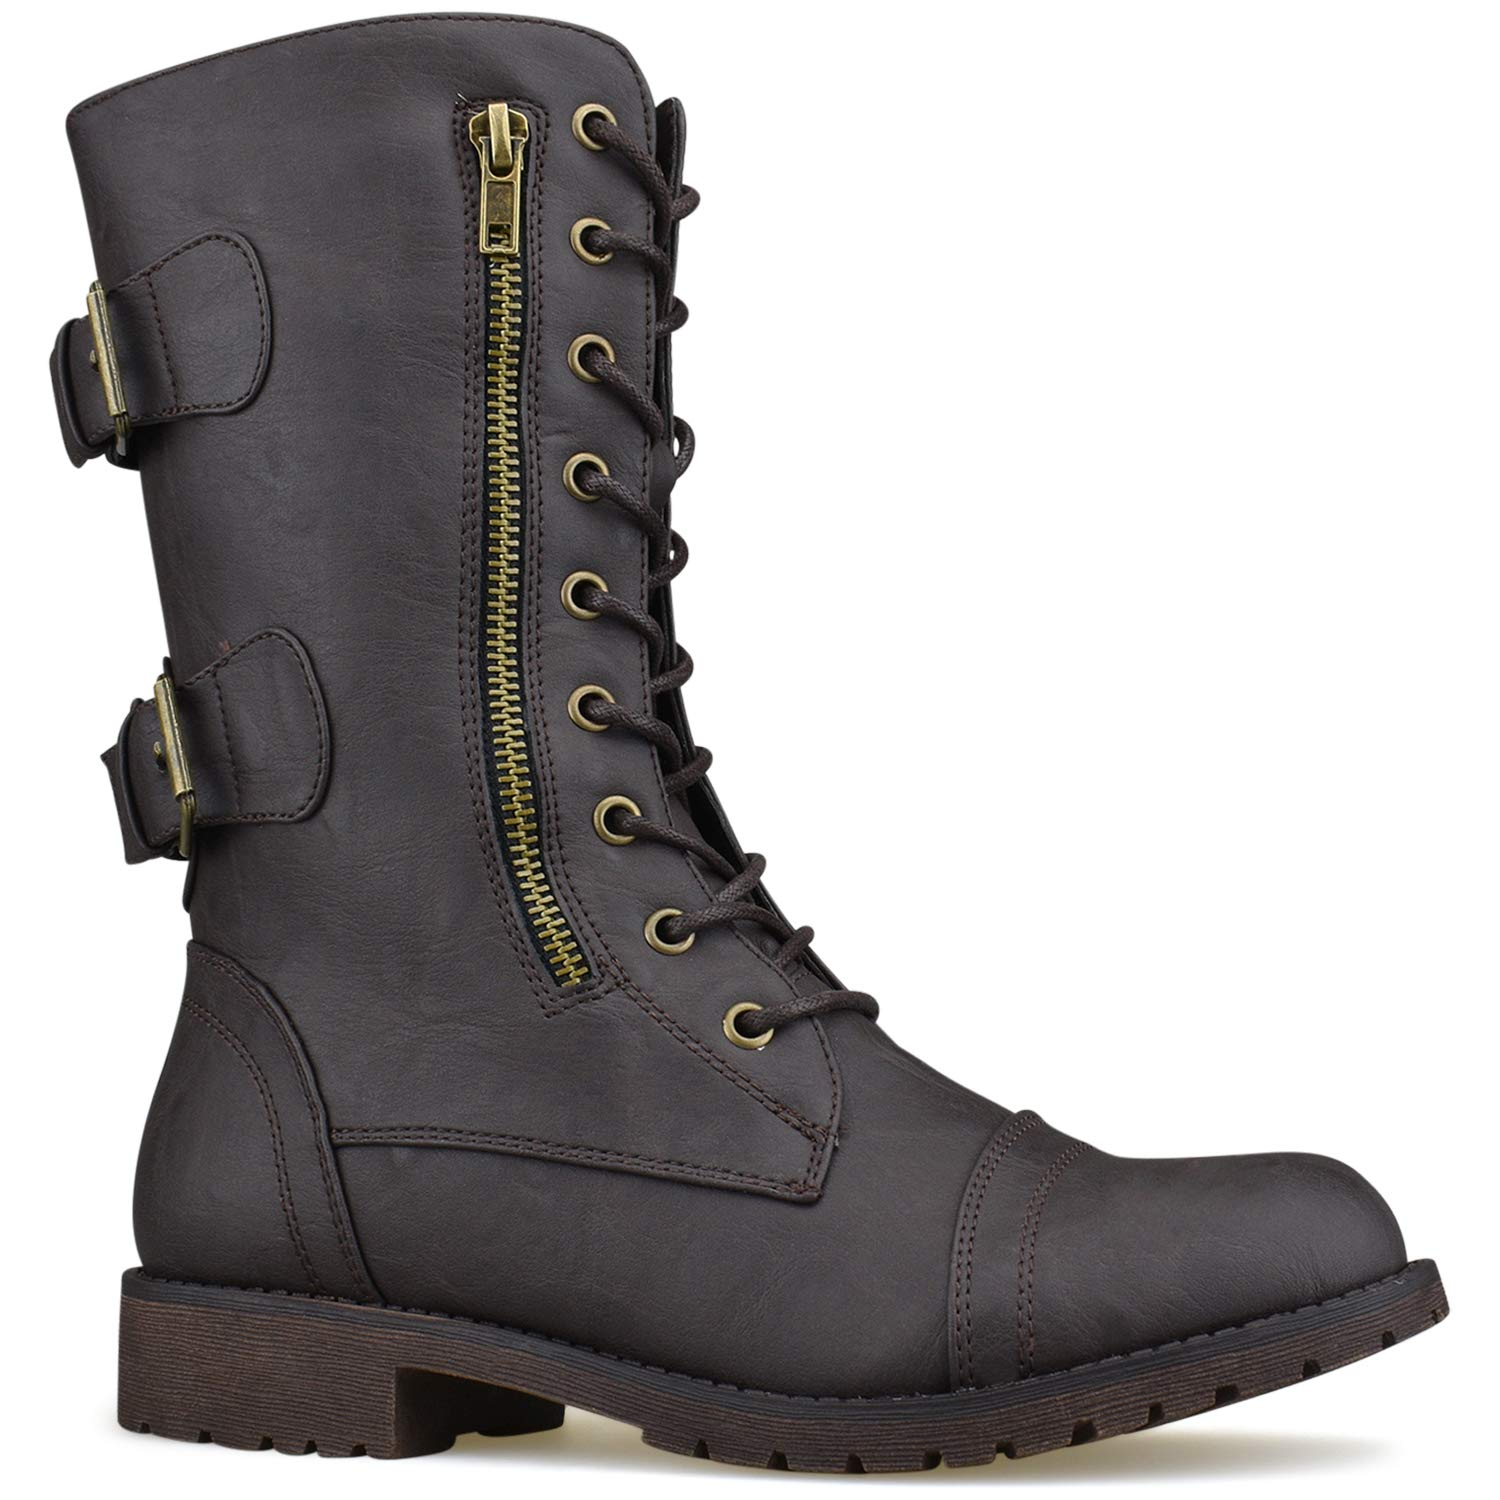 Womens Military Ankle Lace Up Buckle Combat Boots Mid Knee High Exclusive Booties Premier Standard